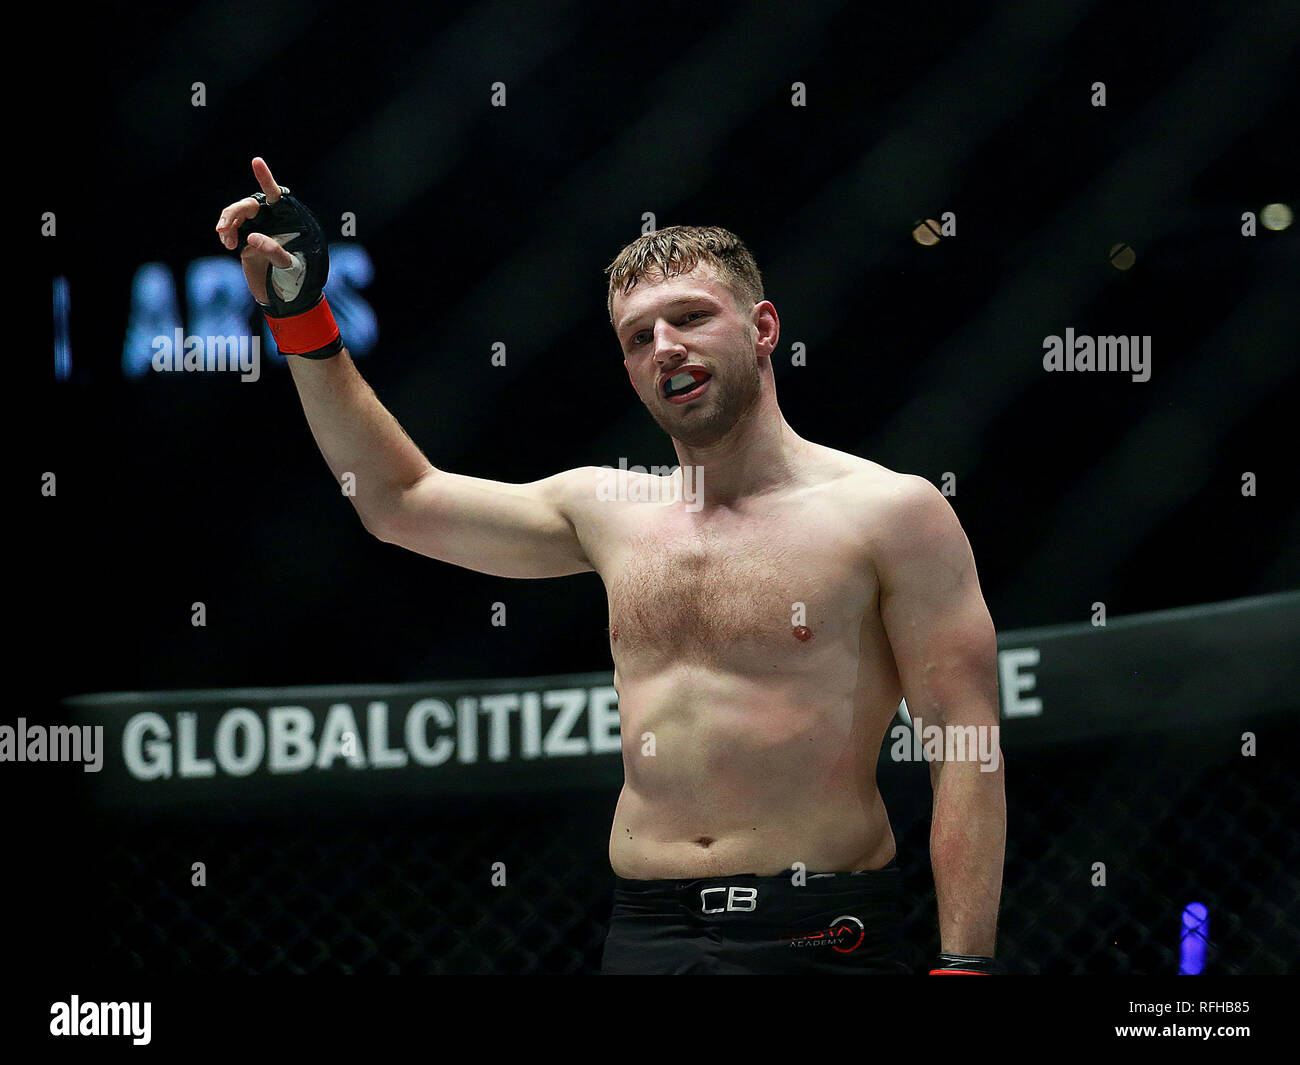 Pasay City, Philippines. 25th Jan, 2019. Reinier de Ridder of the Netherlands celebrates after winning against Fan Rong of China during their middleweight match in the One Championship in Pasay City, the Philippines, Jan. 25, 2019. De Ridder won via submission in round 1. Credit: Rouelle Umali/Xinhua/Alamy Live News - Stock Image